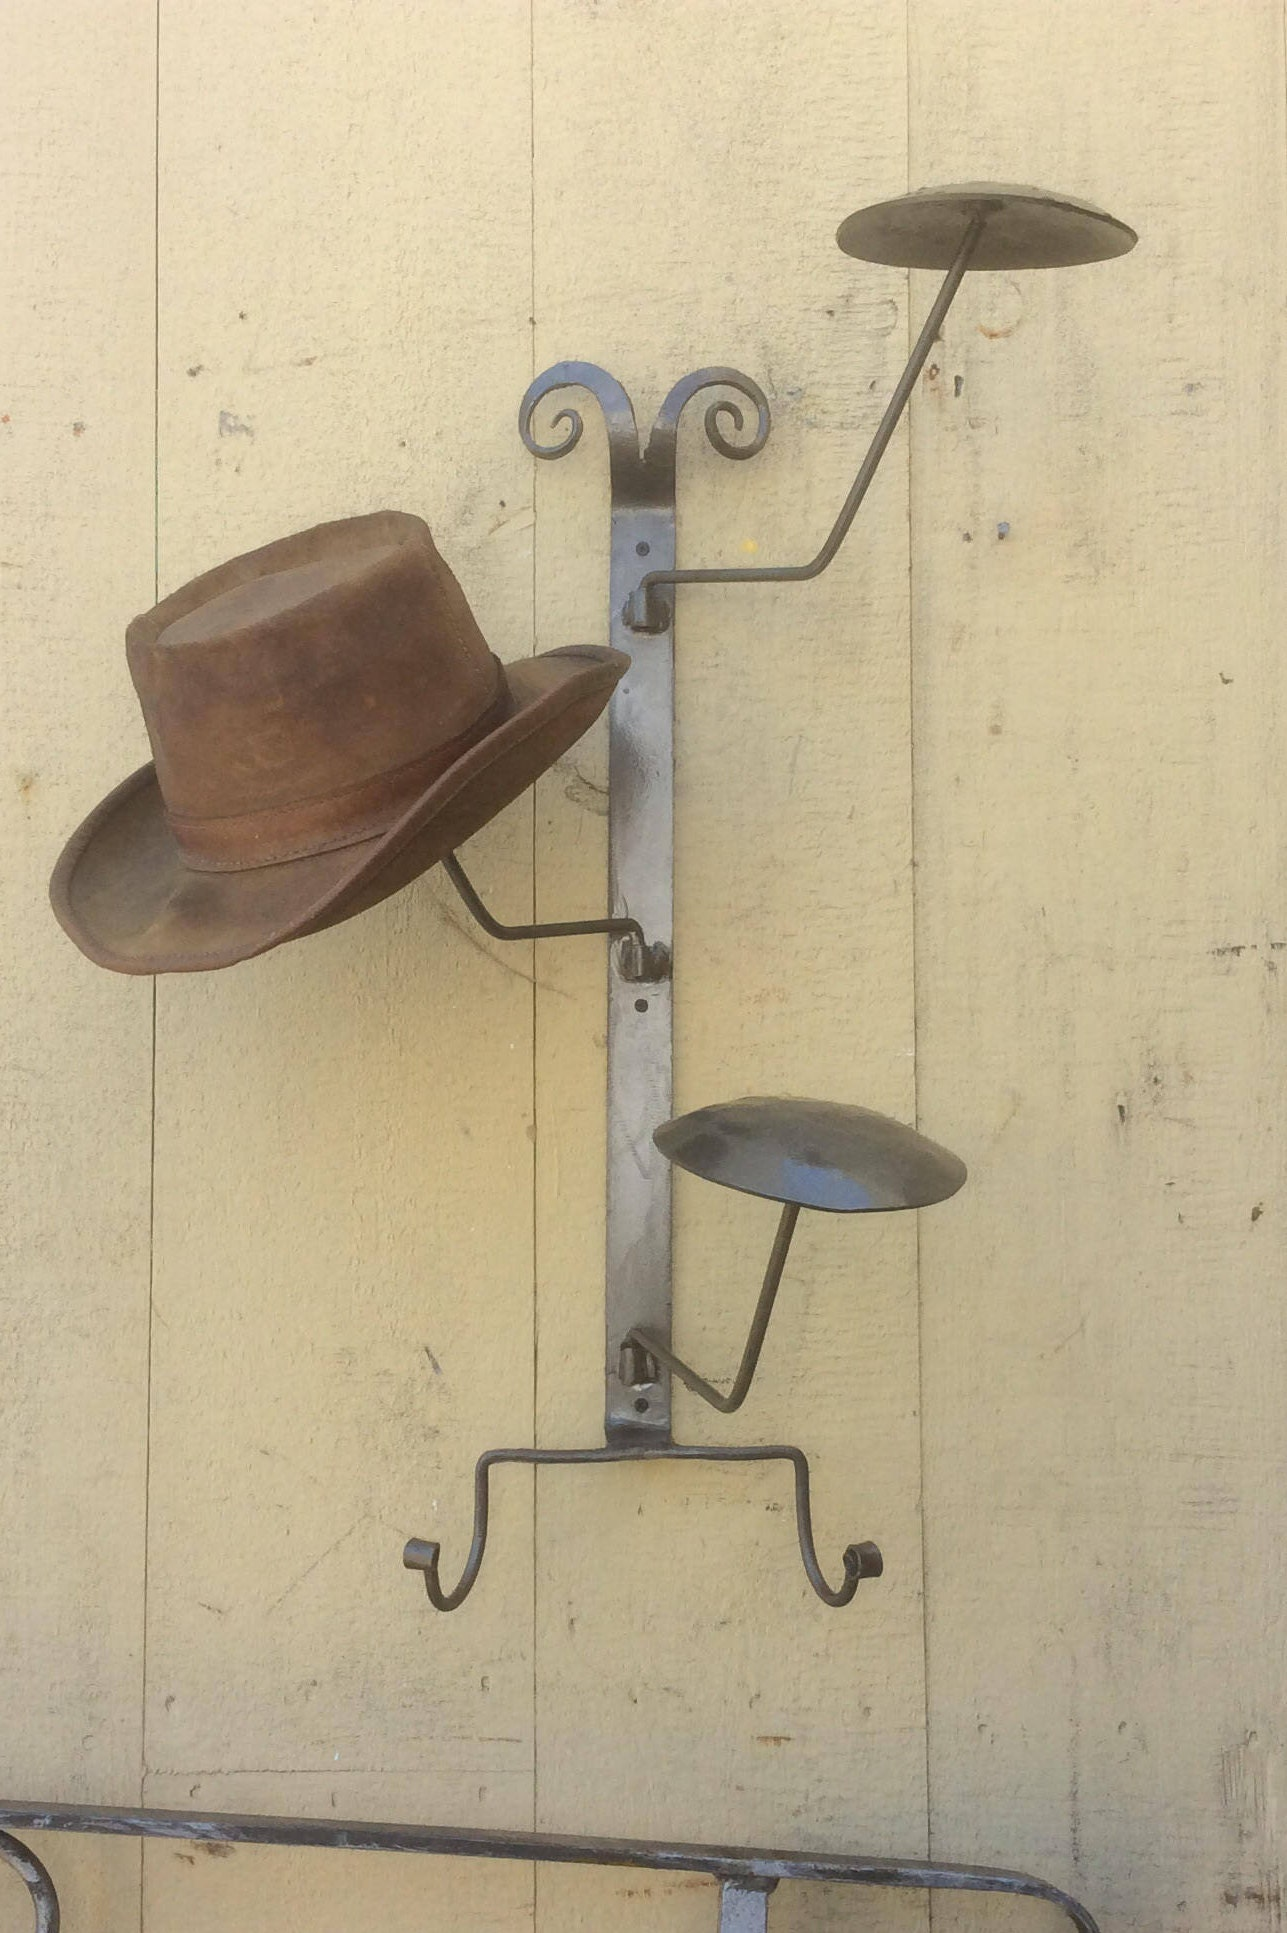 I Need Ideas For Decorating My Living Room: Hat Rack Hangs On The Wall Arms Swivel And Is Hand Forged